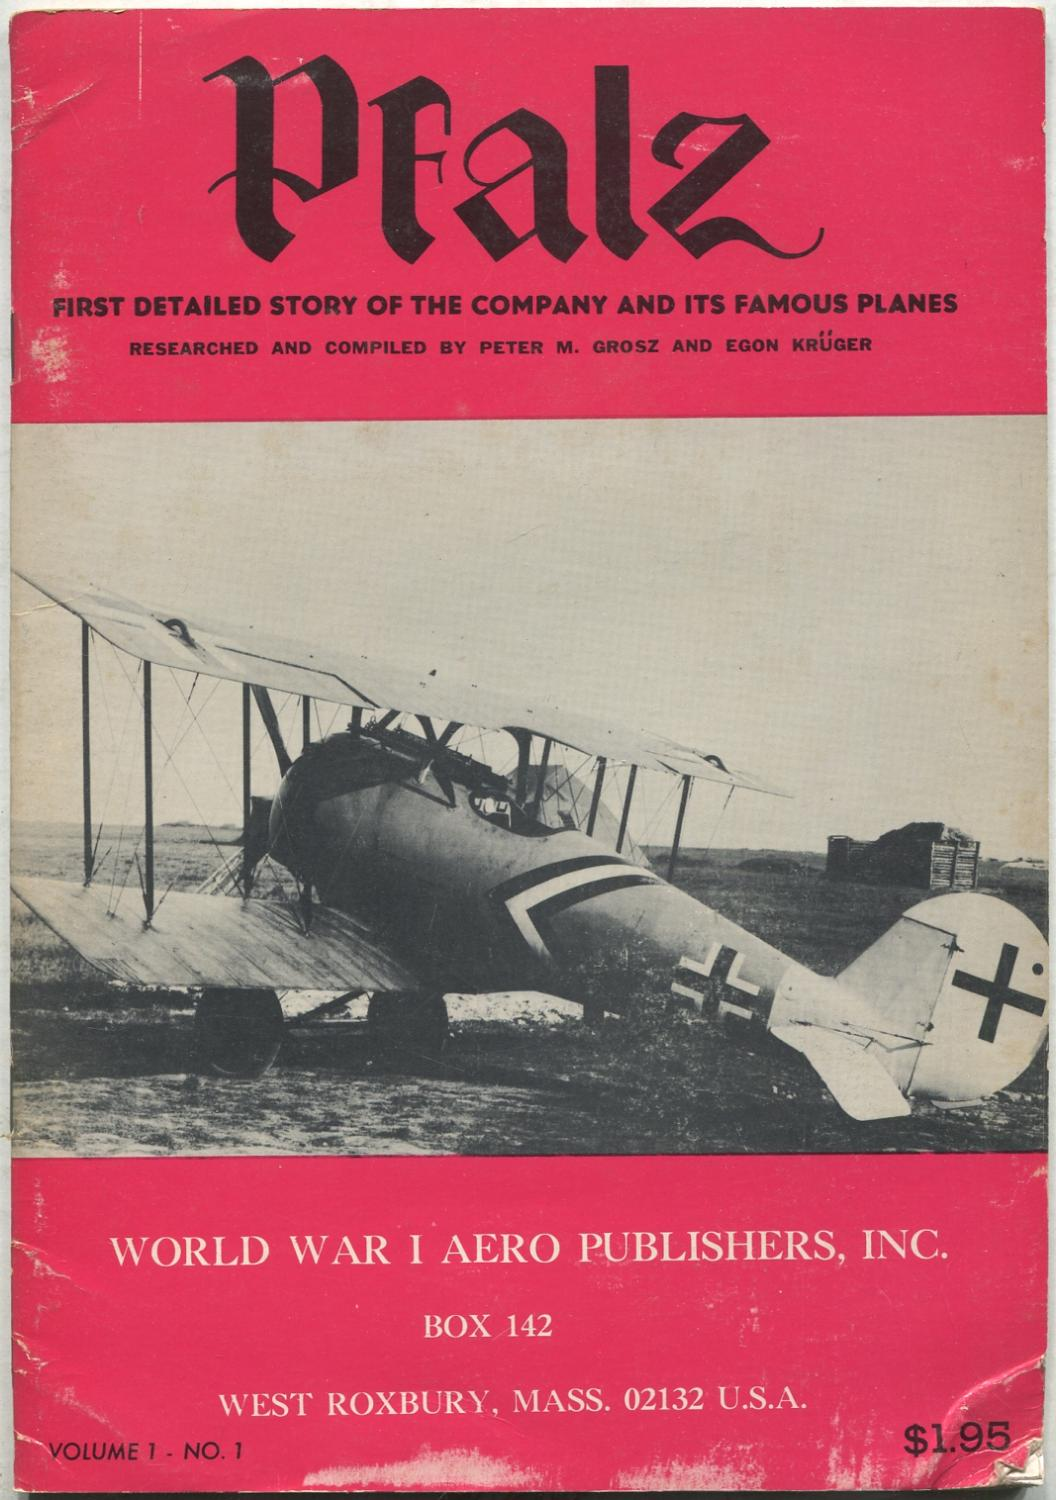 Pfalz: First Detailed Story of the Company: GROSZ, Peter M.